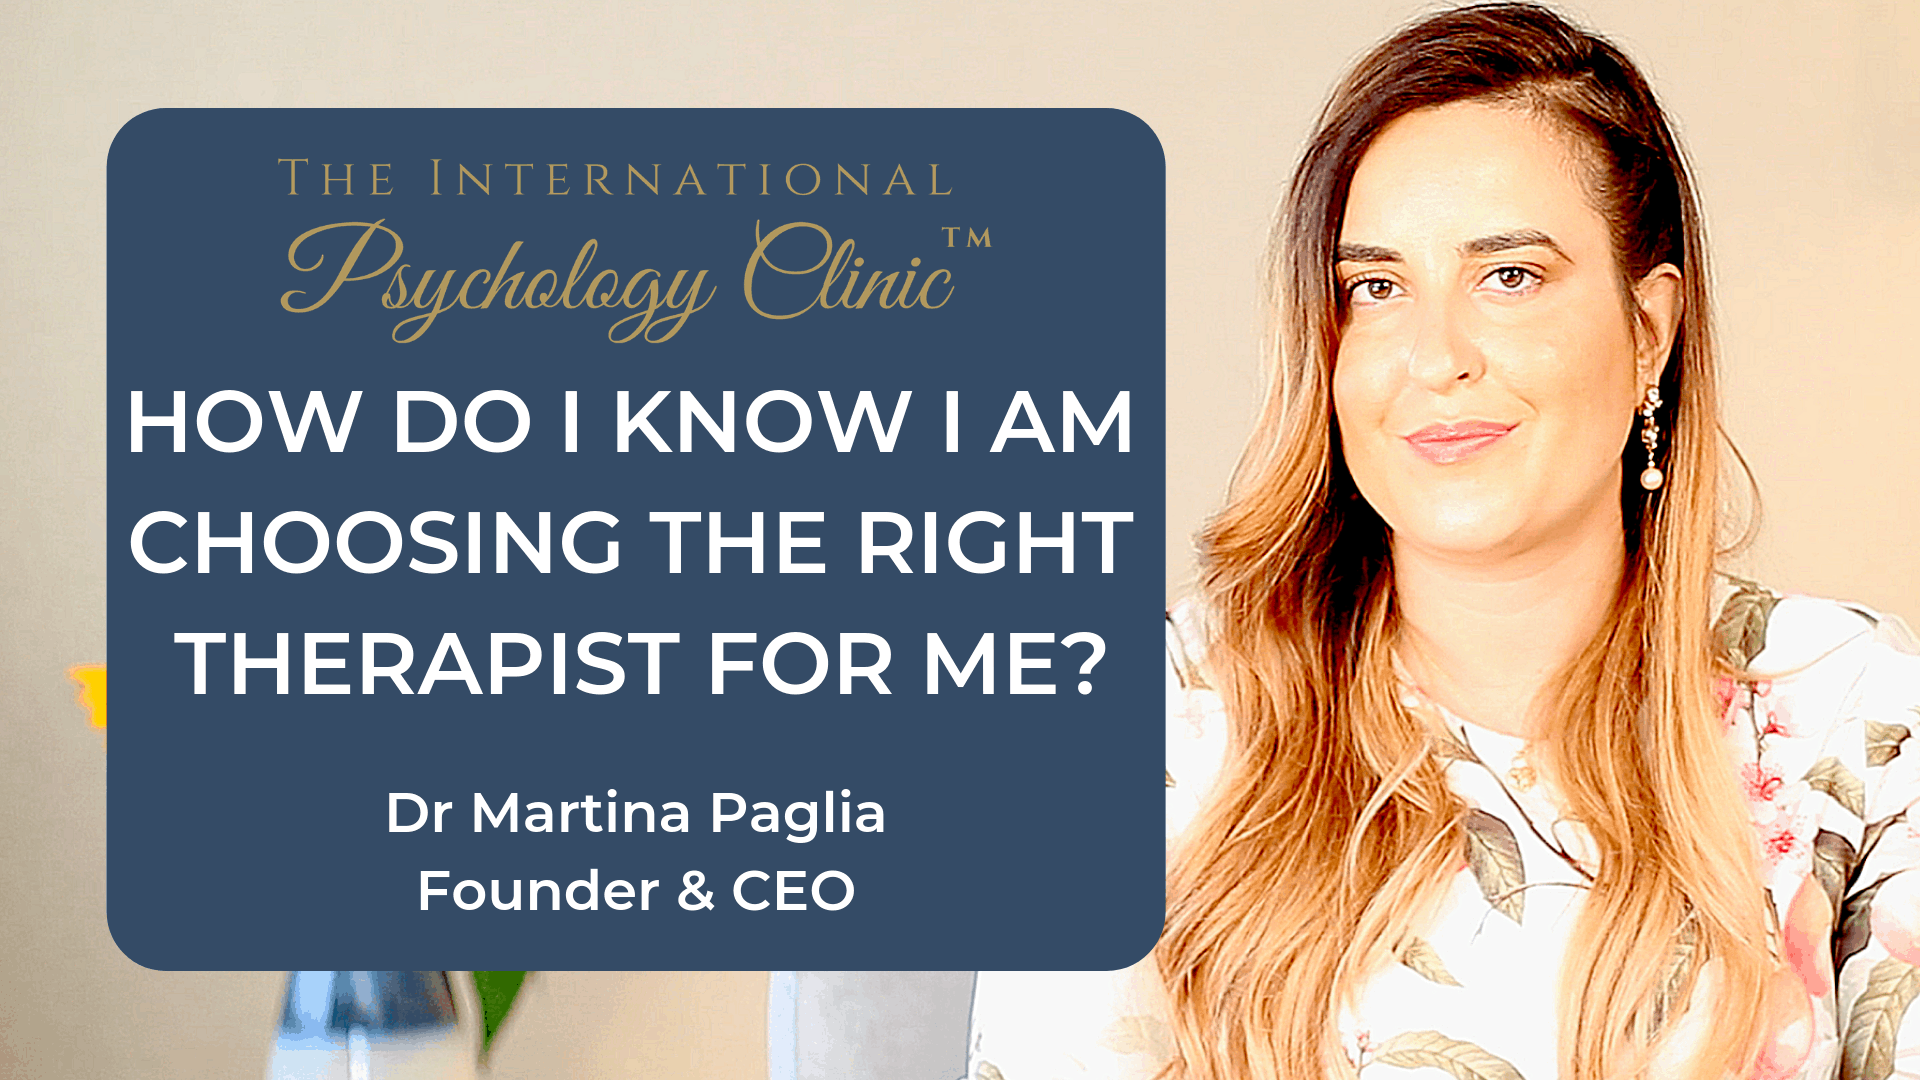 how do i know i am choosing the right therapist for me